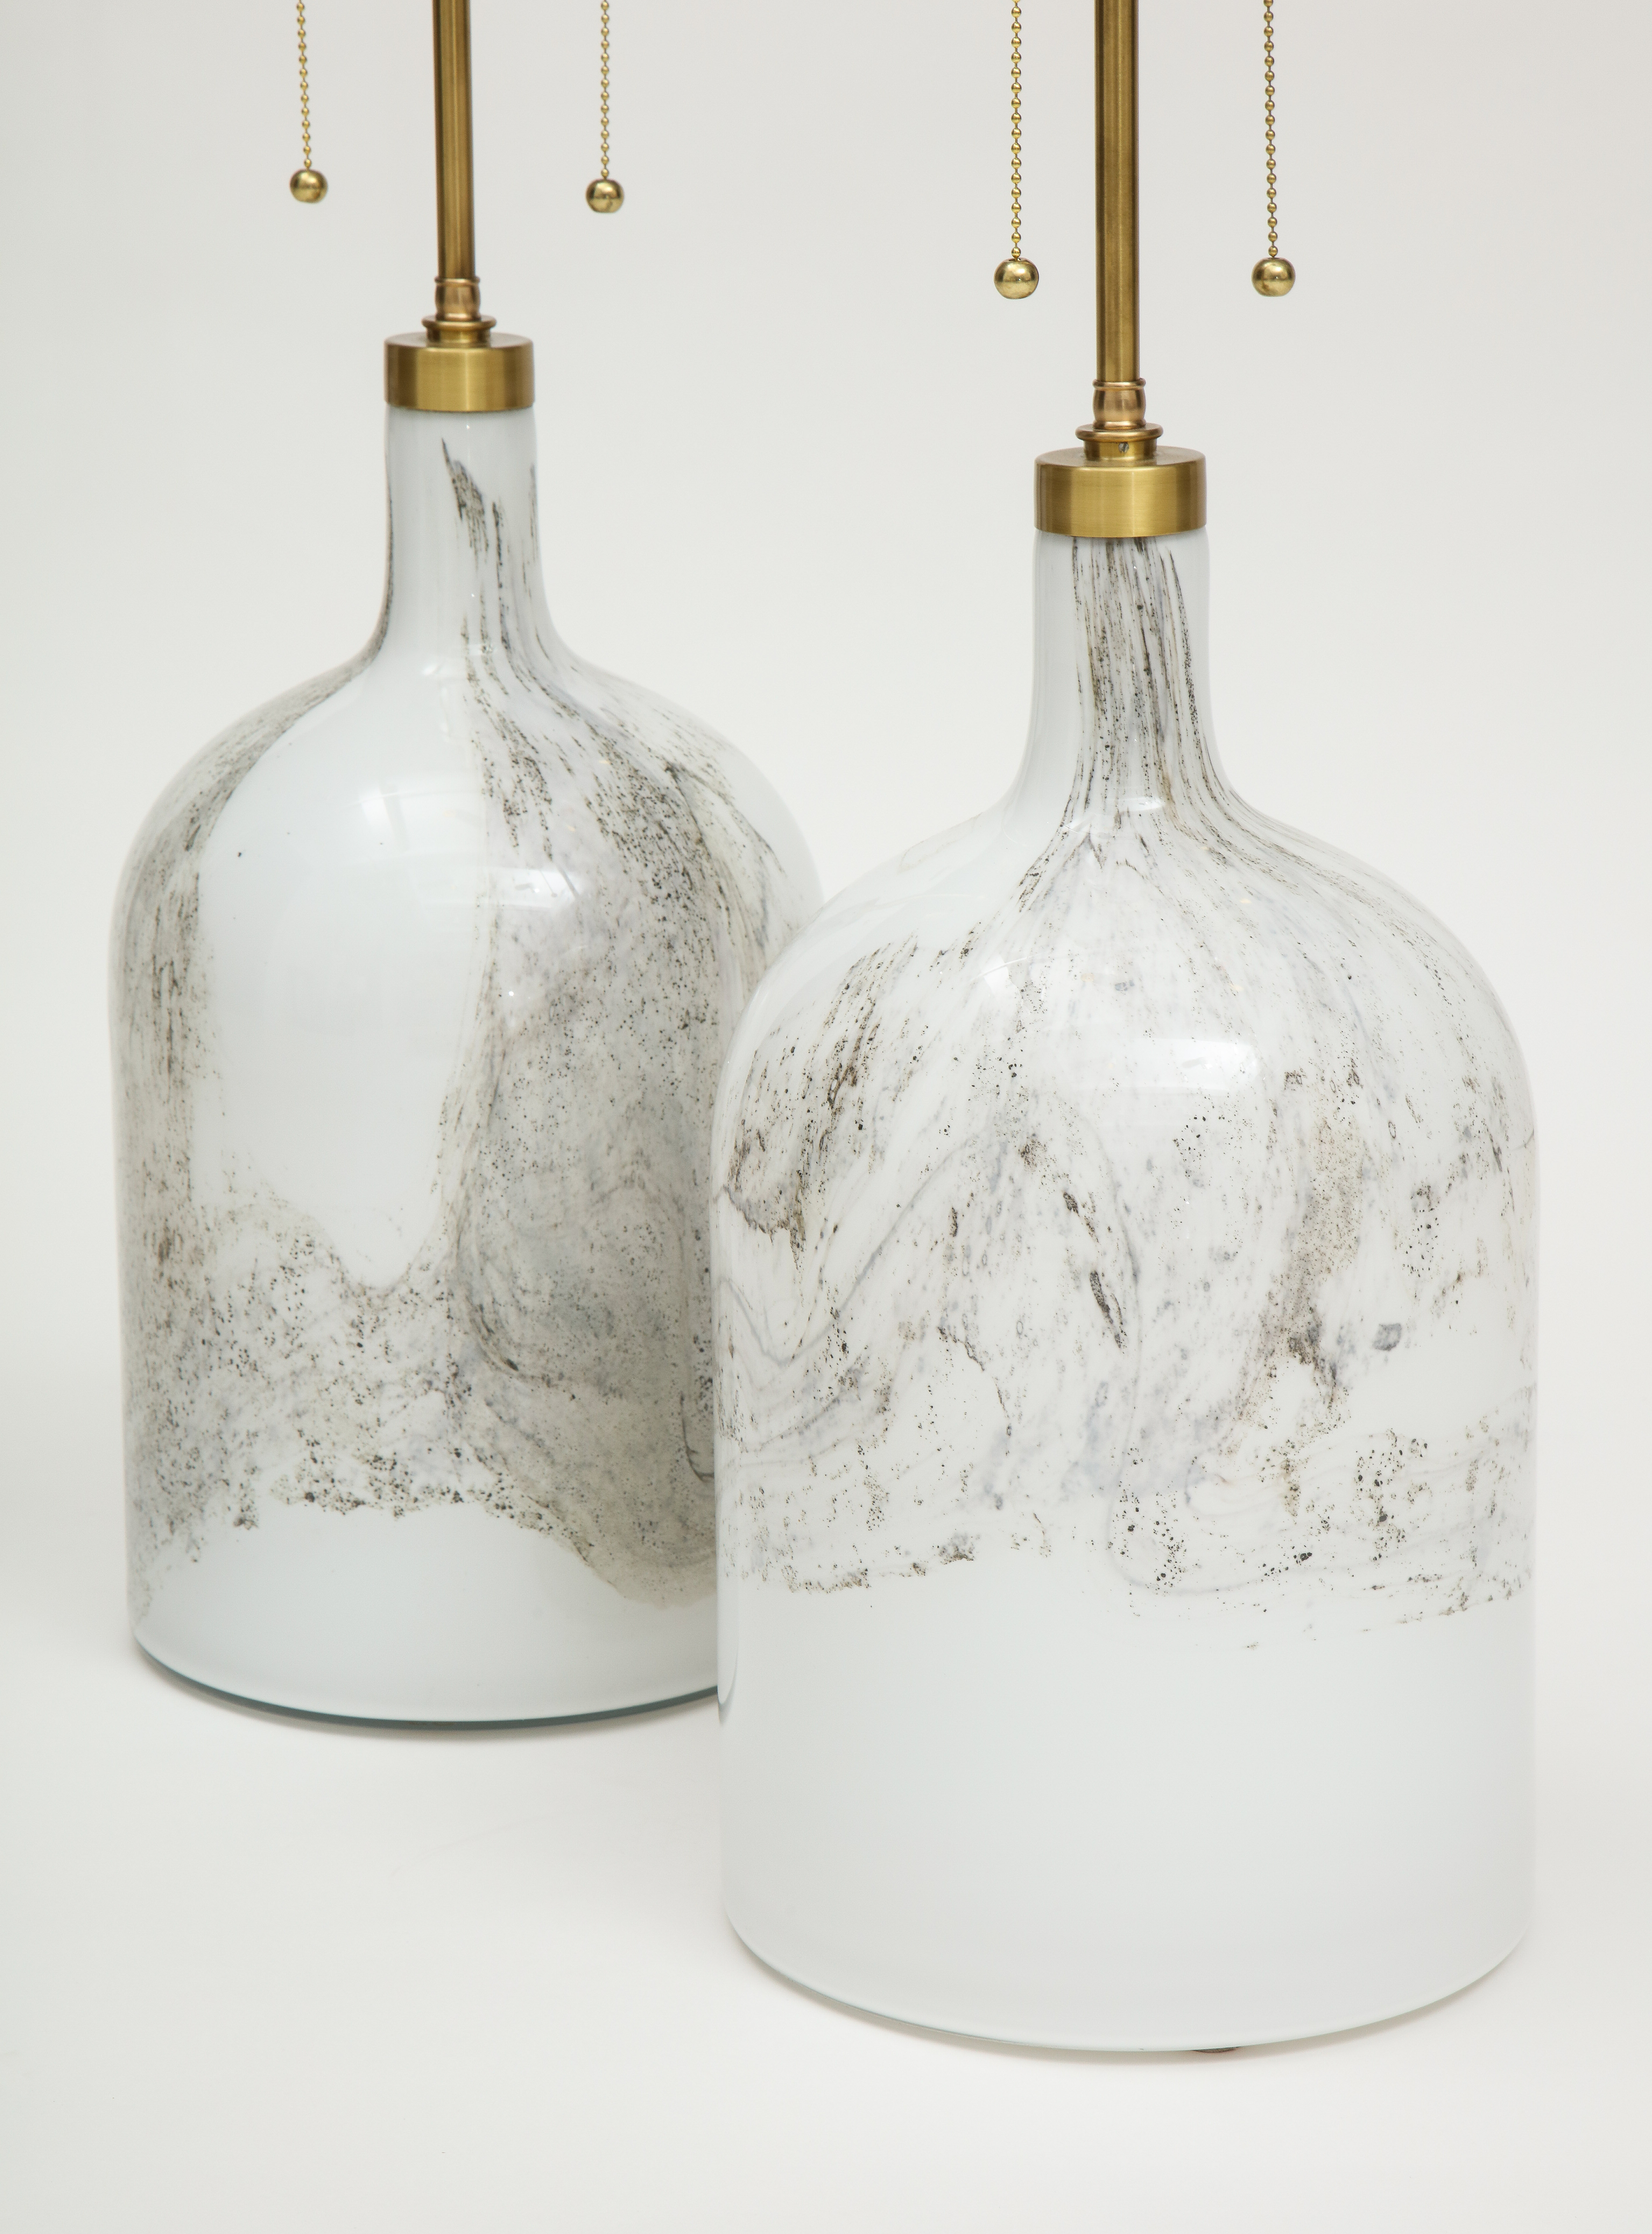 Pair of Holmegaard lamps, Designed by Michael Bang